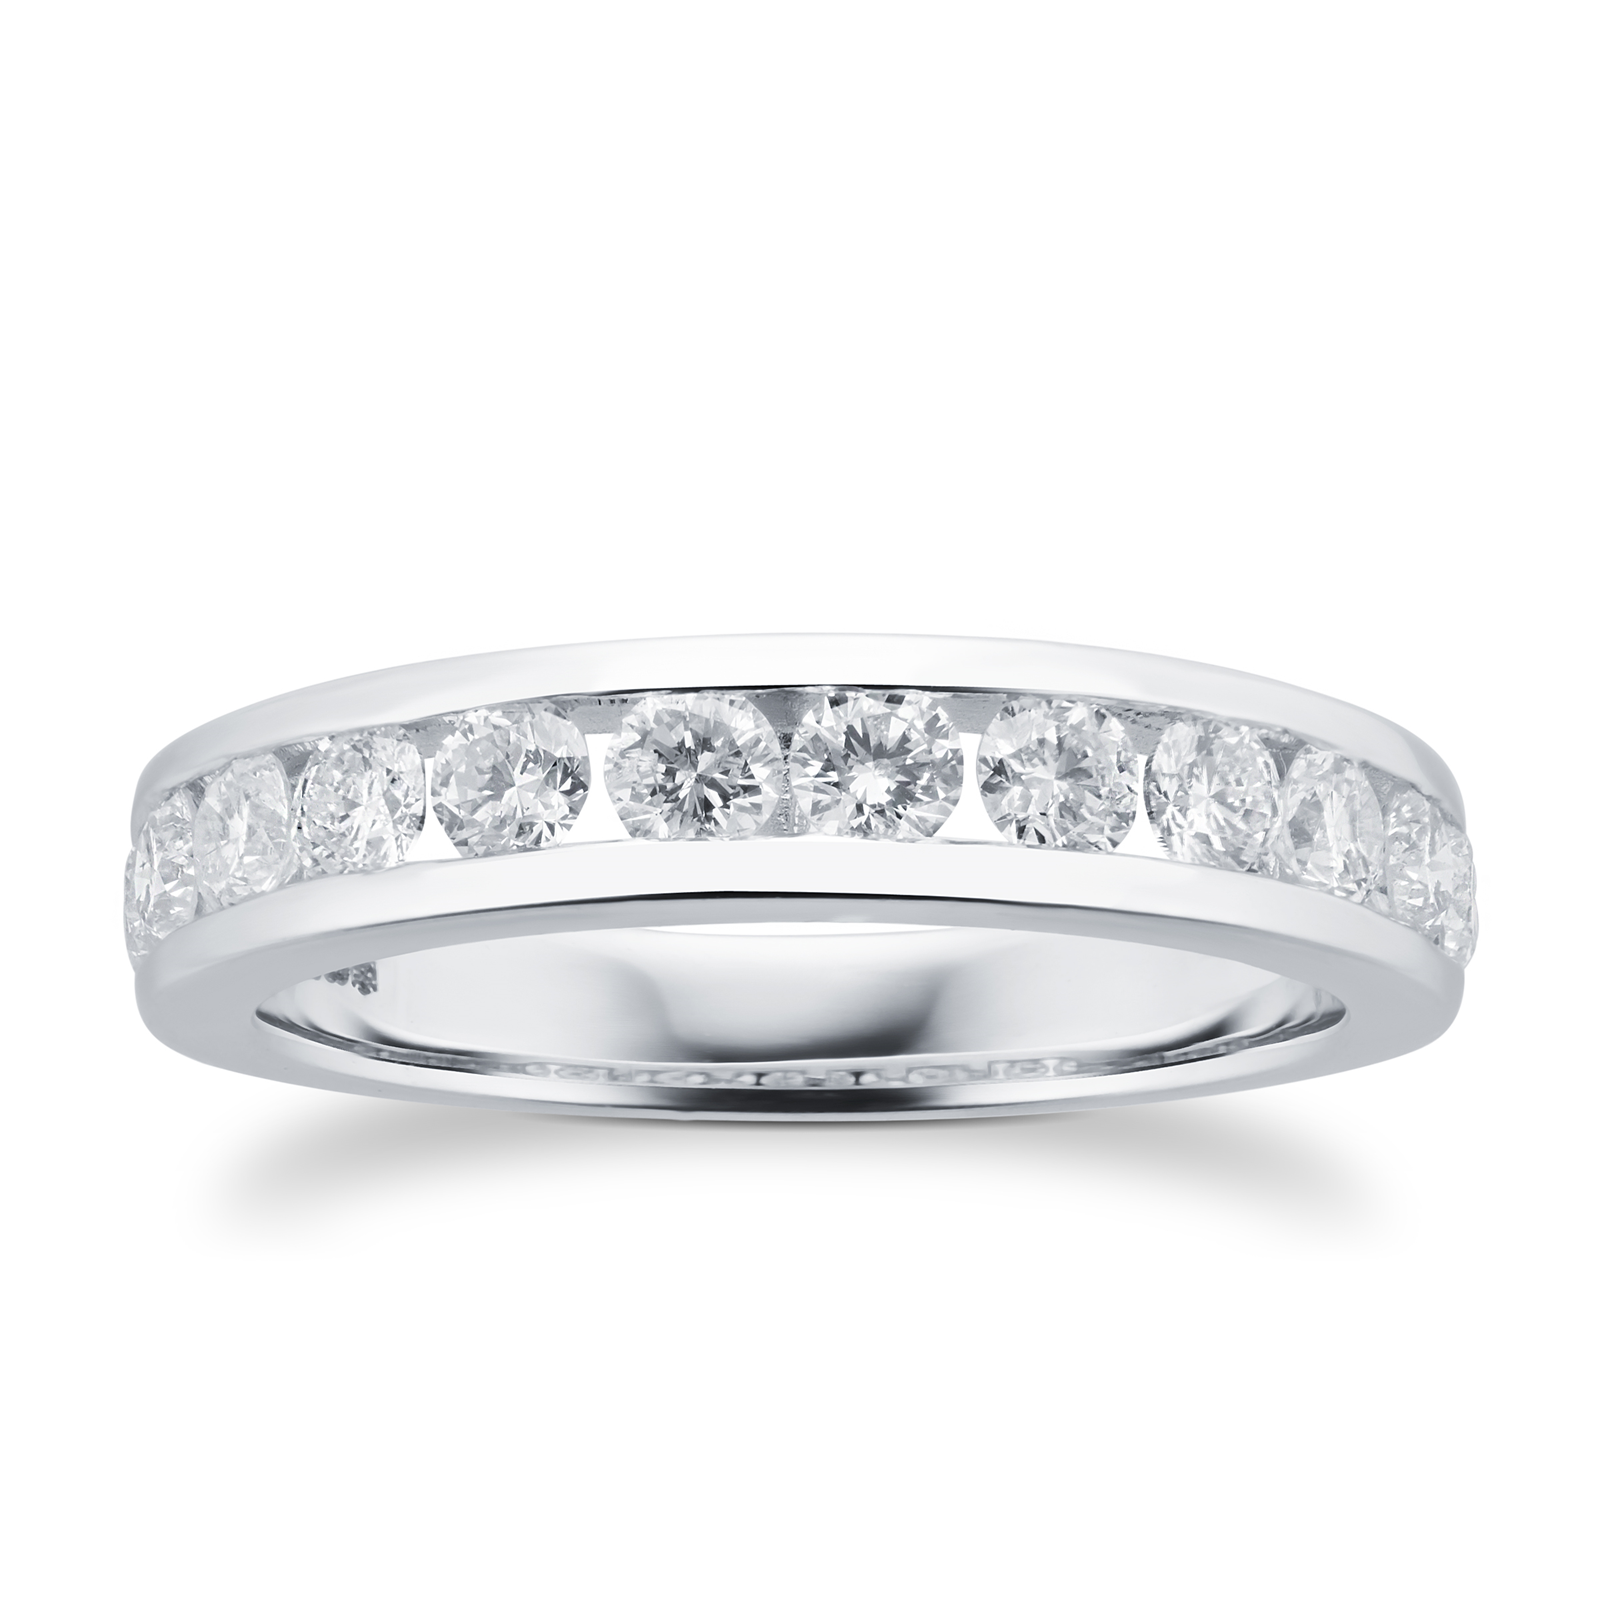 Brilliant Cut 1.00ct Channel Set Half Eternity Ring In 9ct White Gold